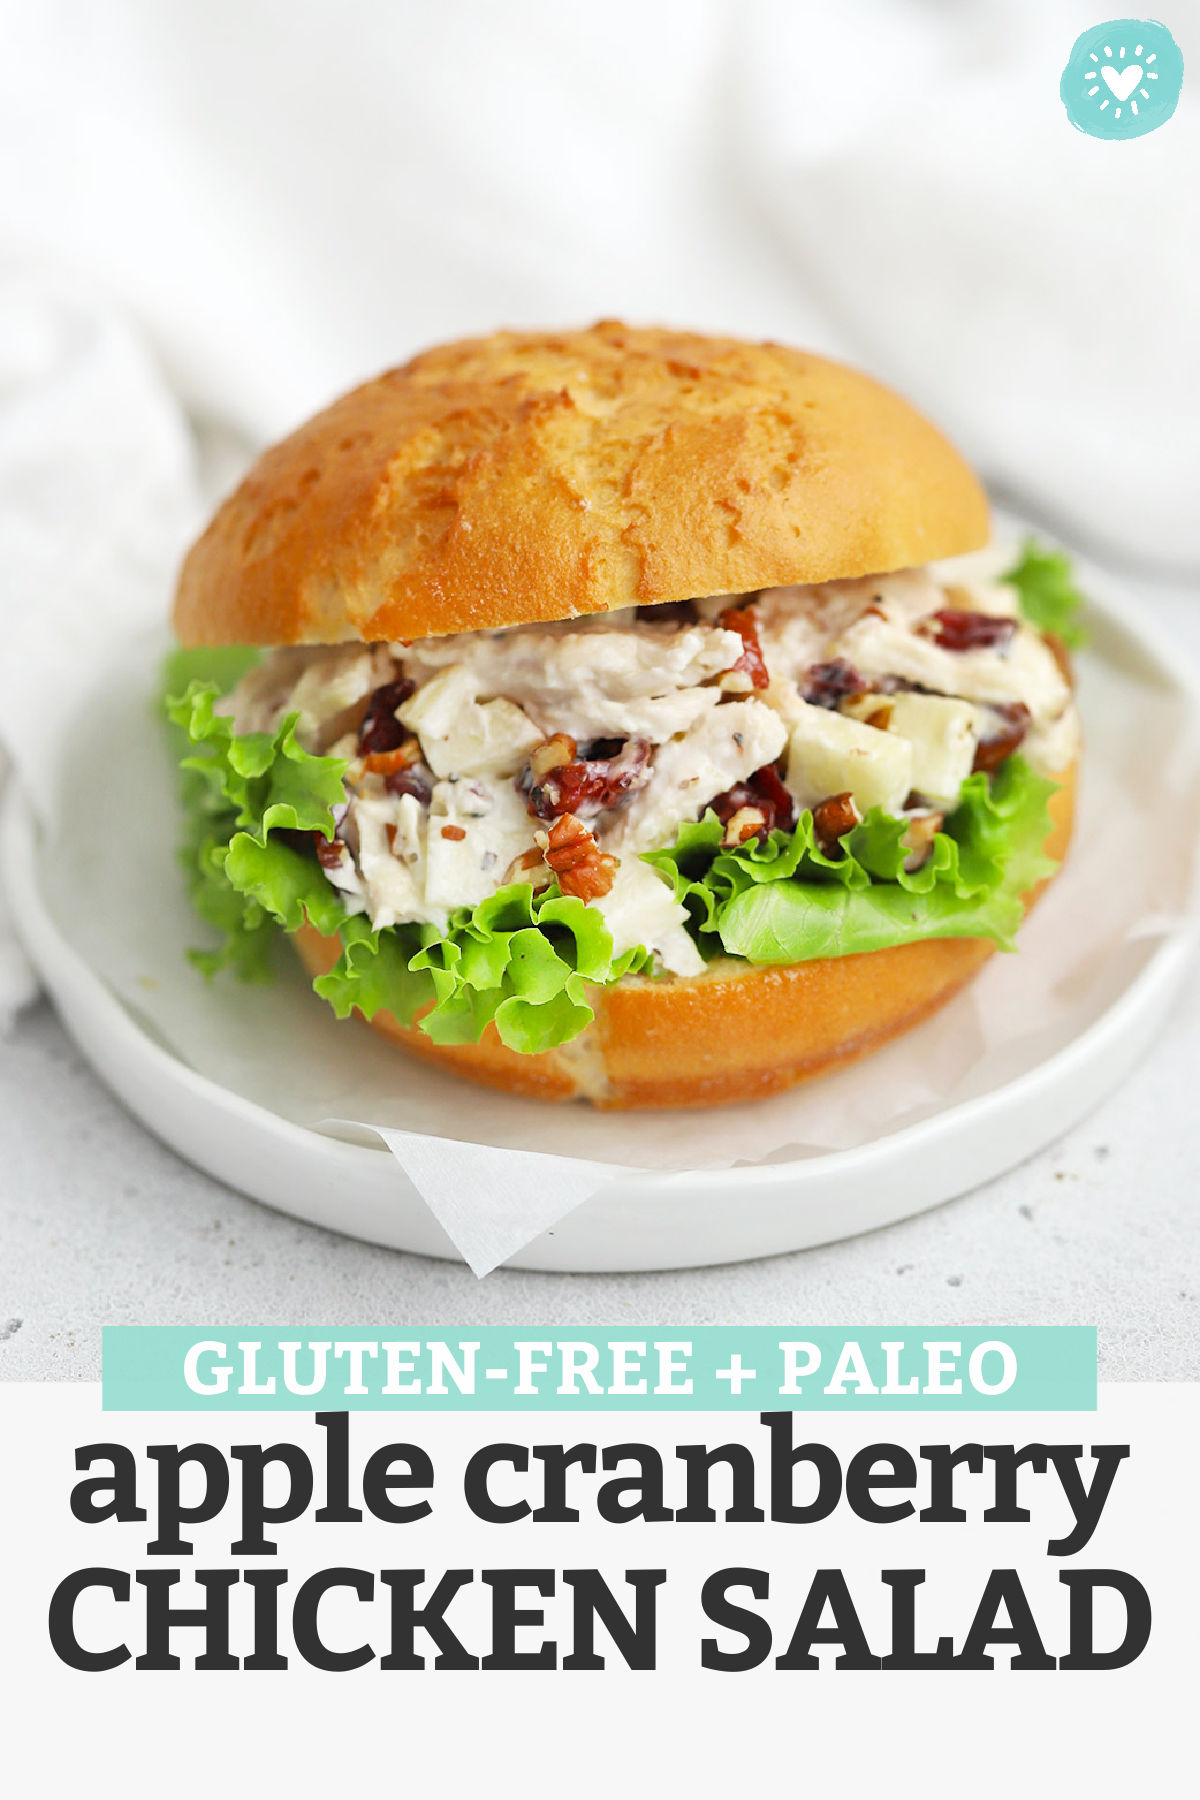 Apple Chicken Salad - This chicken salad with apples is perfect for the start of fall! It's the perfect combination of savory, sweet, creamy, and crunchy. Don't miss all our serving ideas below! (Gluten-Free, Paleo-Friendly) // Apple Chicken Salad // Pecan Chicken Salad // Cranberry Pecan Chicken Salad // Fall Chicken Salad #glutenfree #paleo #chickensalad #mealprep